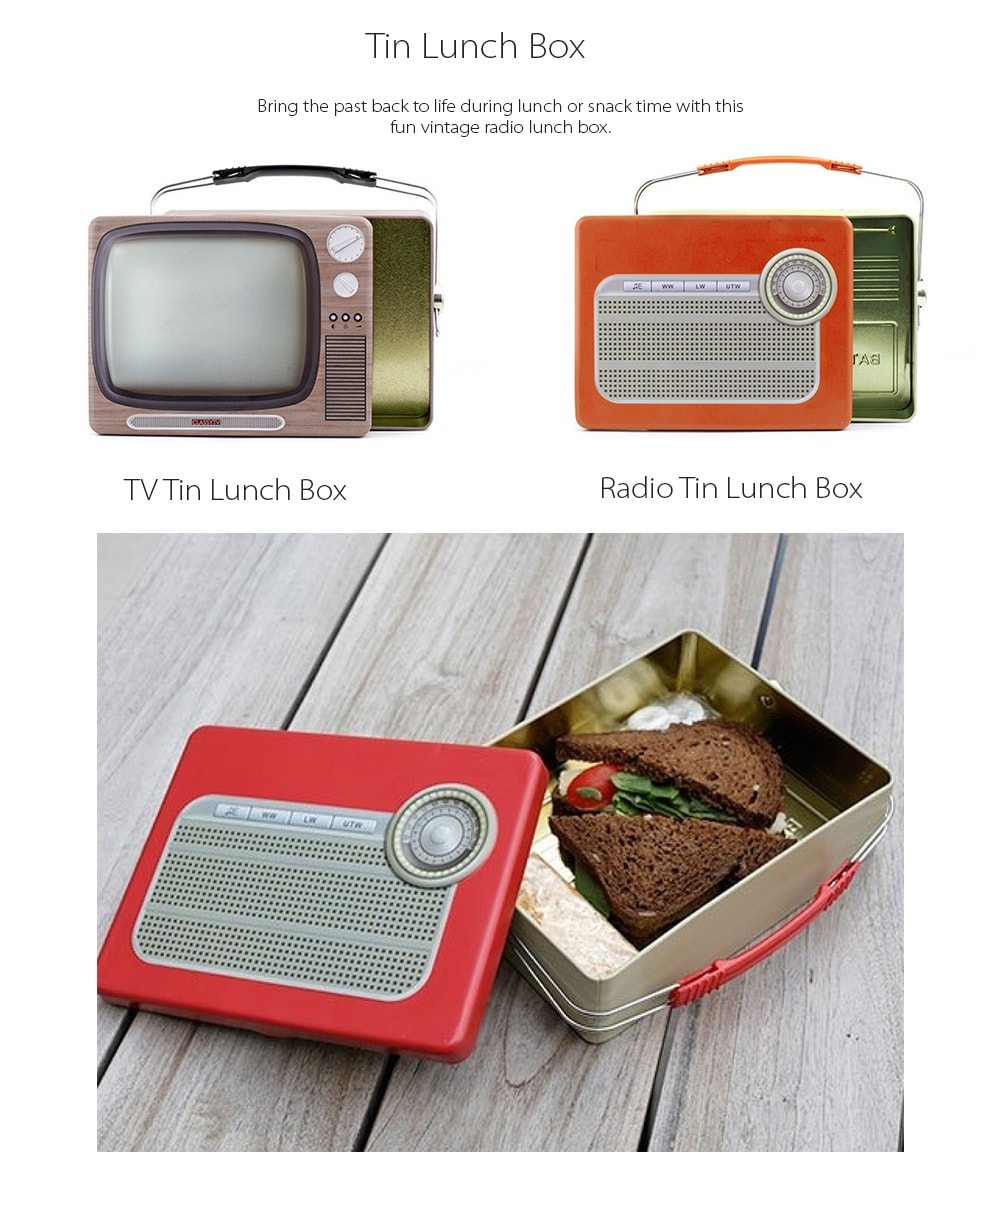 TV/Radio Tin Lunch Box Bring The Past Back To Your Life